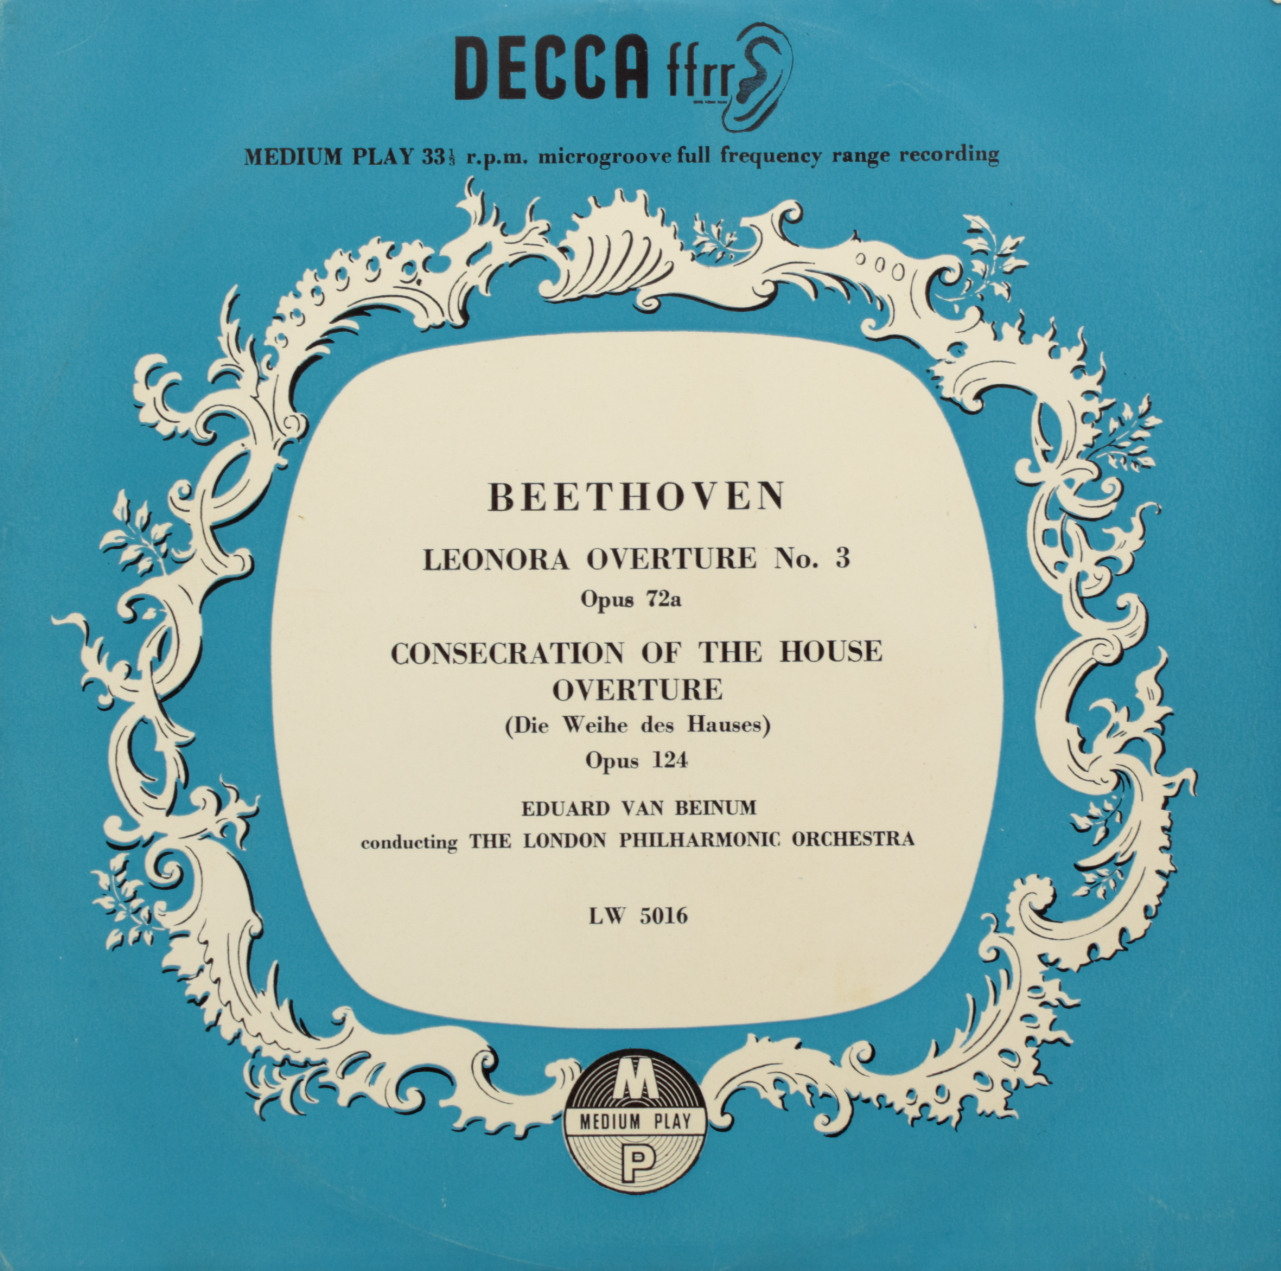 Beethoven: Leonora Overture No. 3 Opus 72a; Consecration of the House Overture (Die Weihe des Hauses